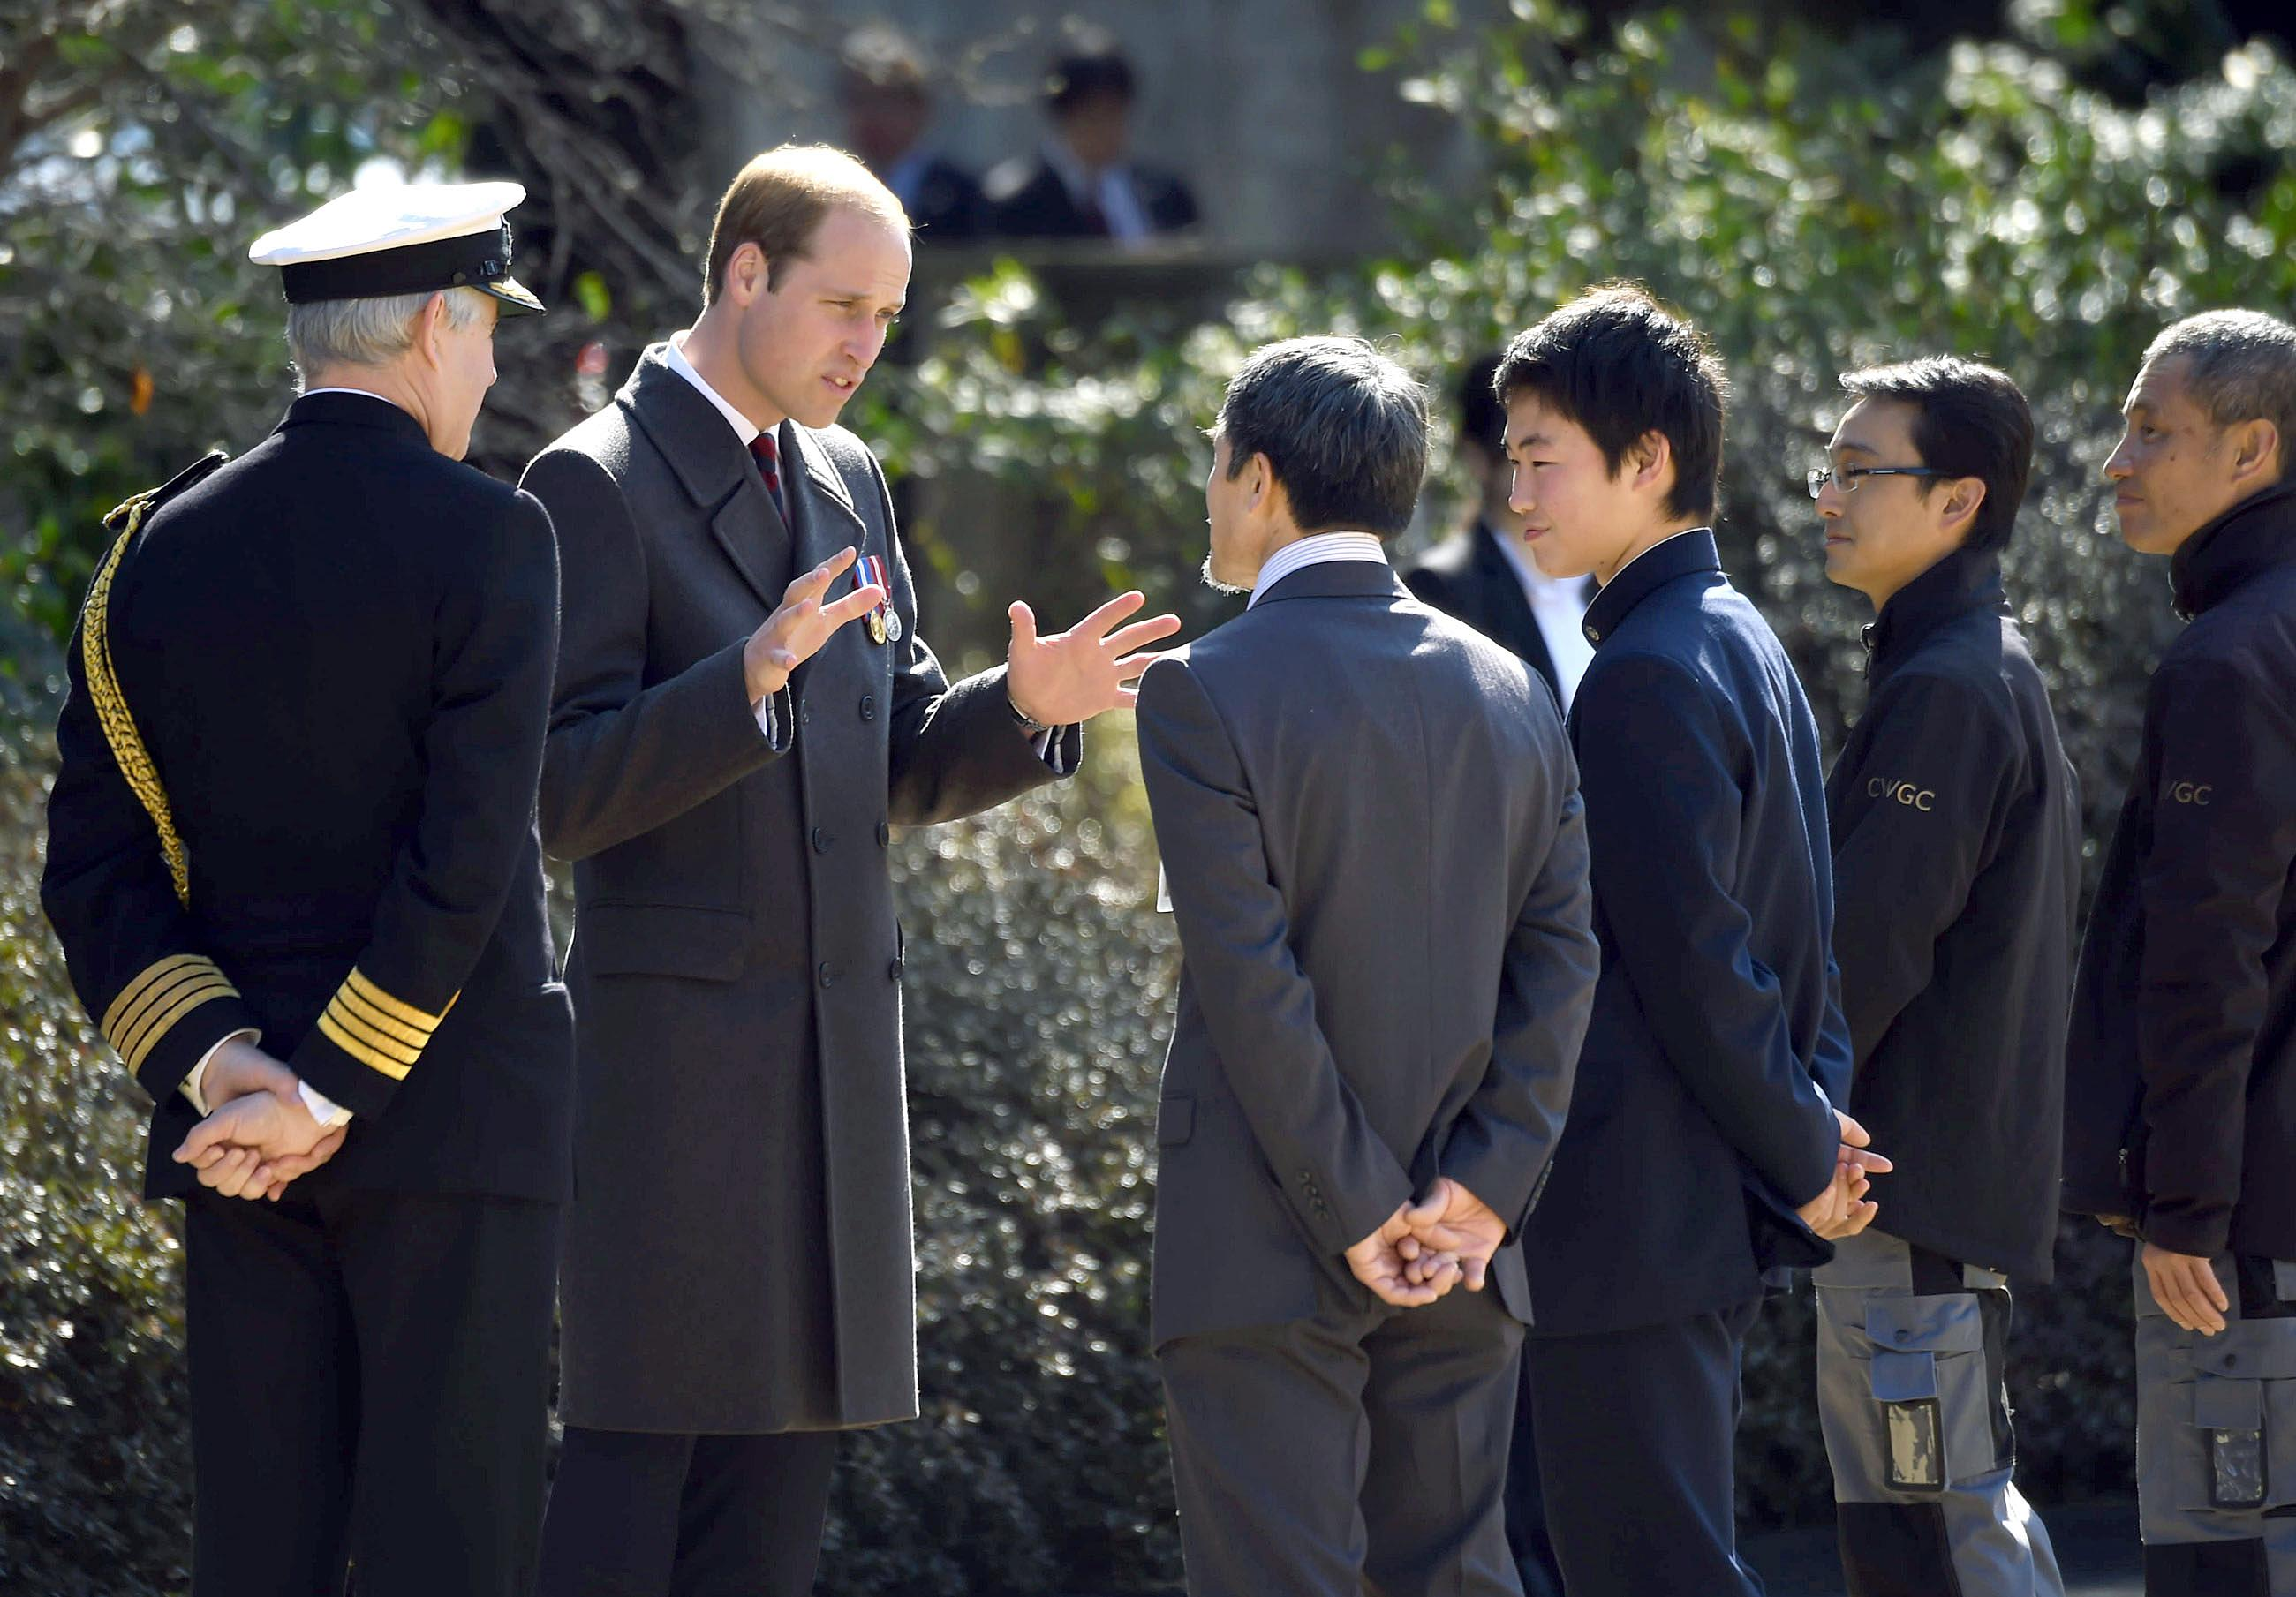 Prince William strikes a friendly contrast to Japan's prince